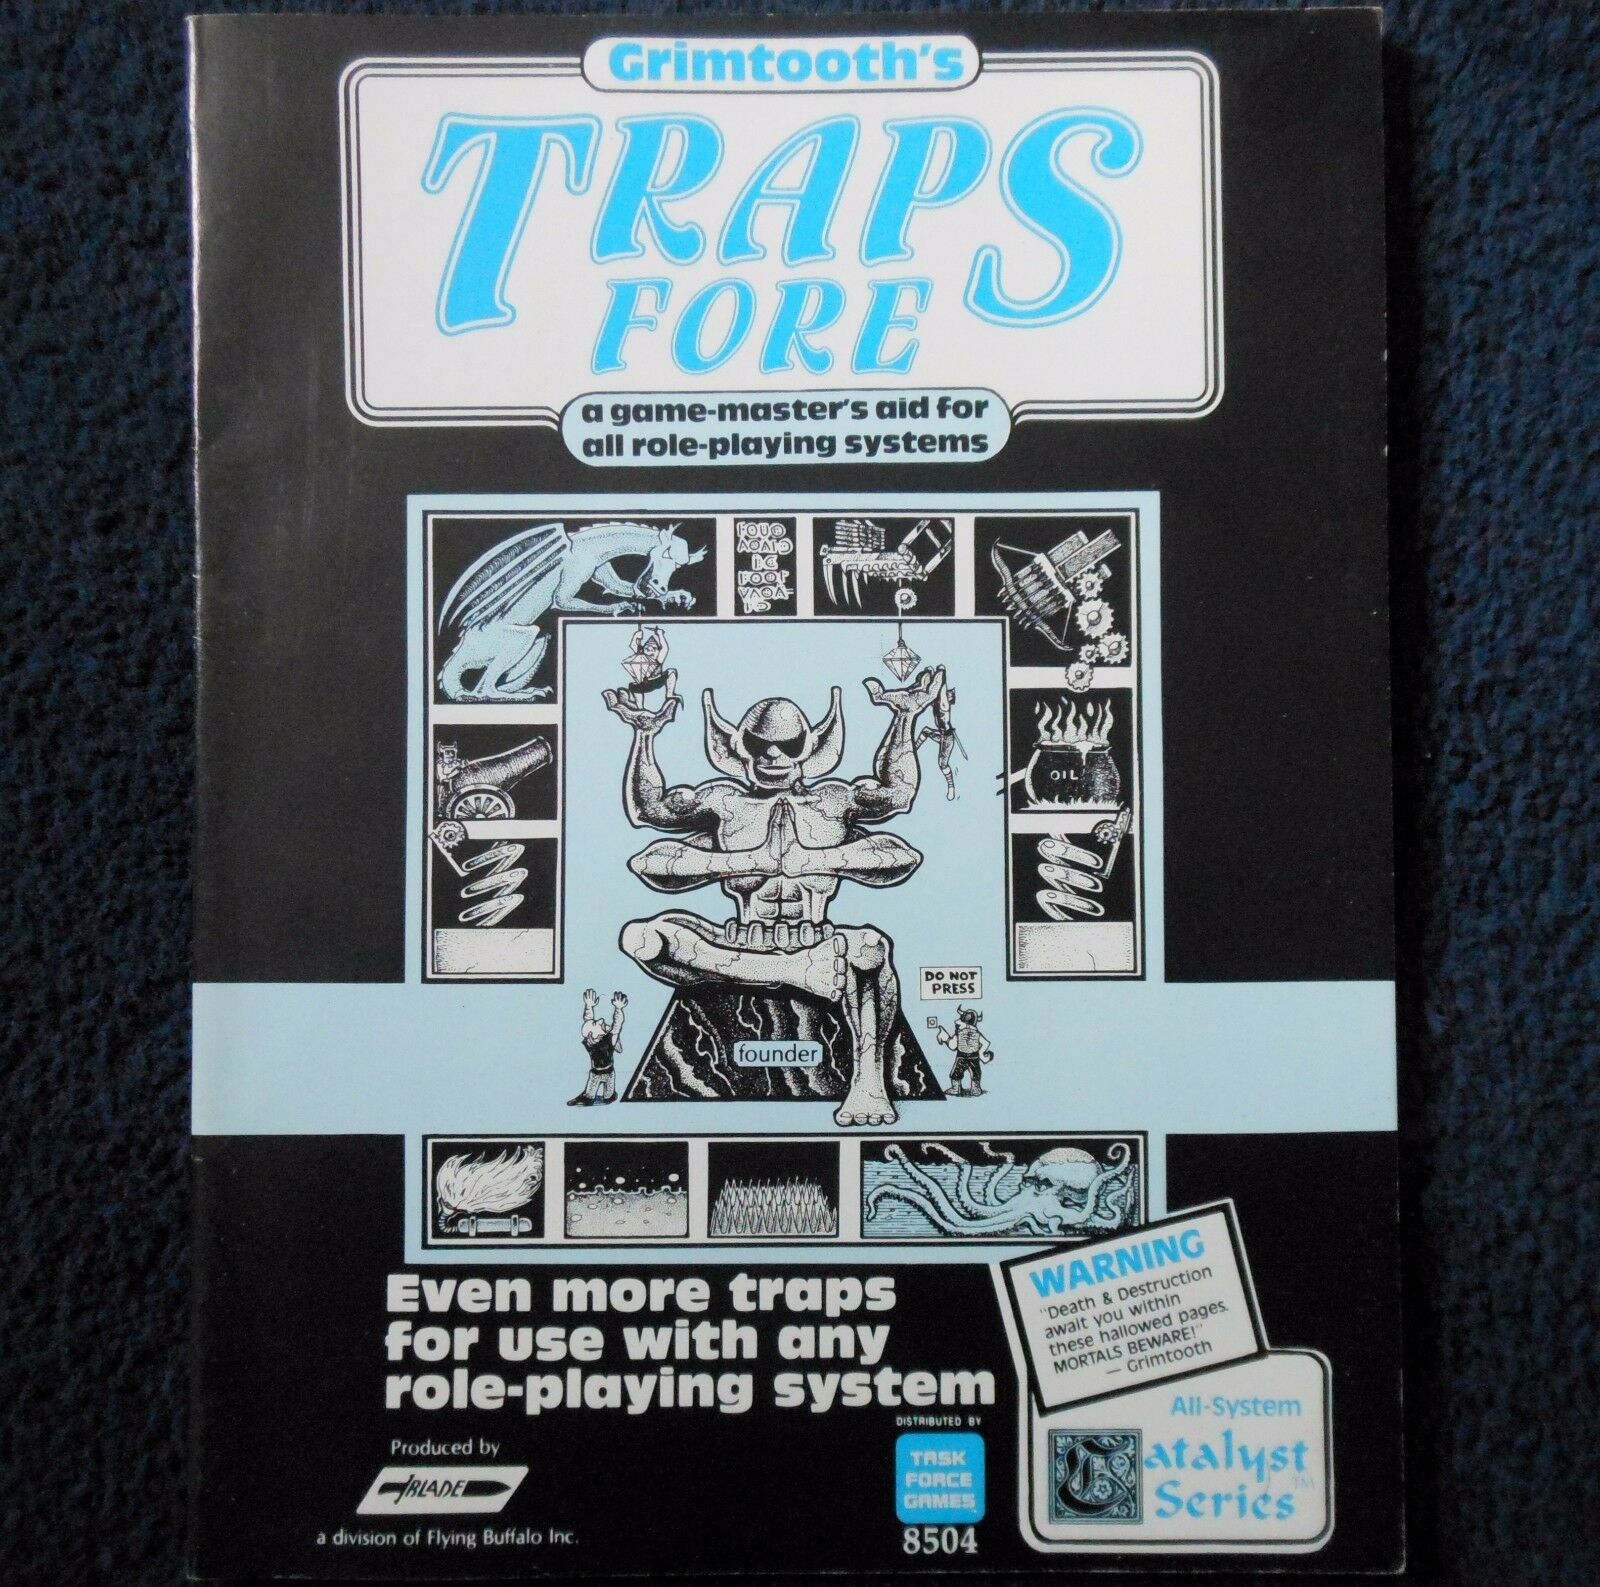 Grimtooth's Traps Fore Advanced Dungeons & Dragons Adventure Module D&D RPG 8504